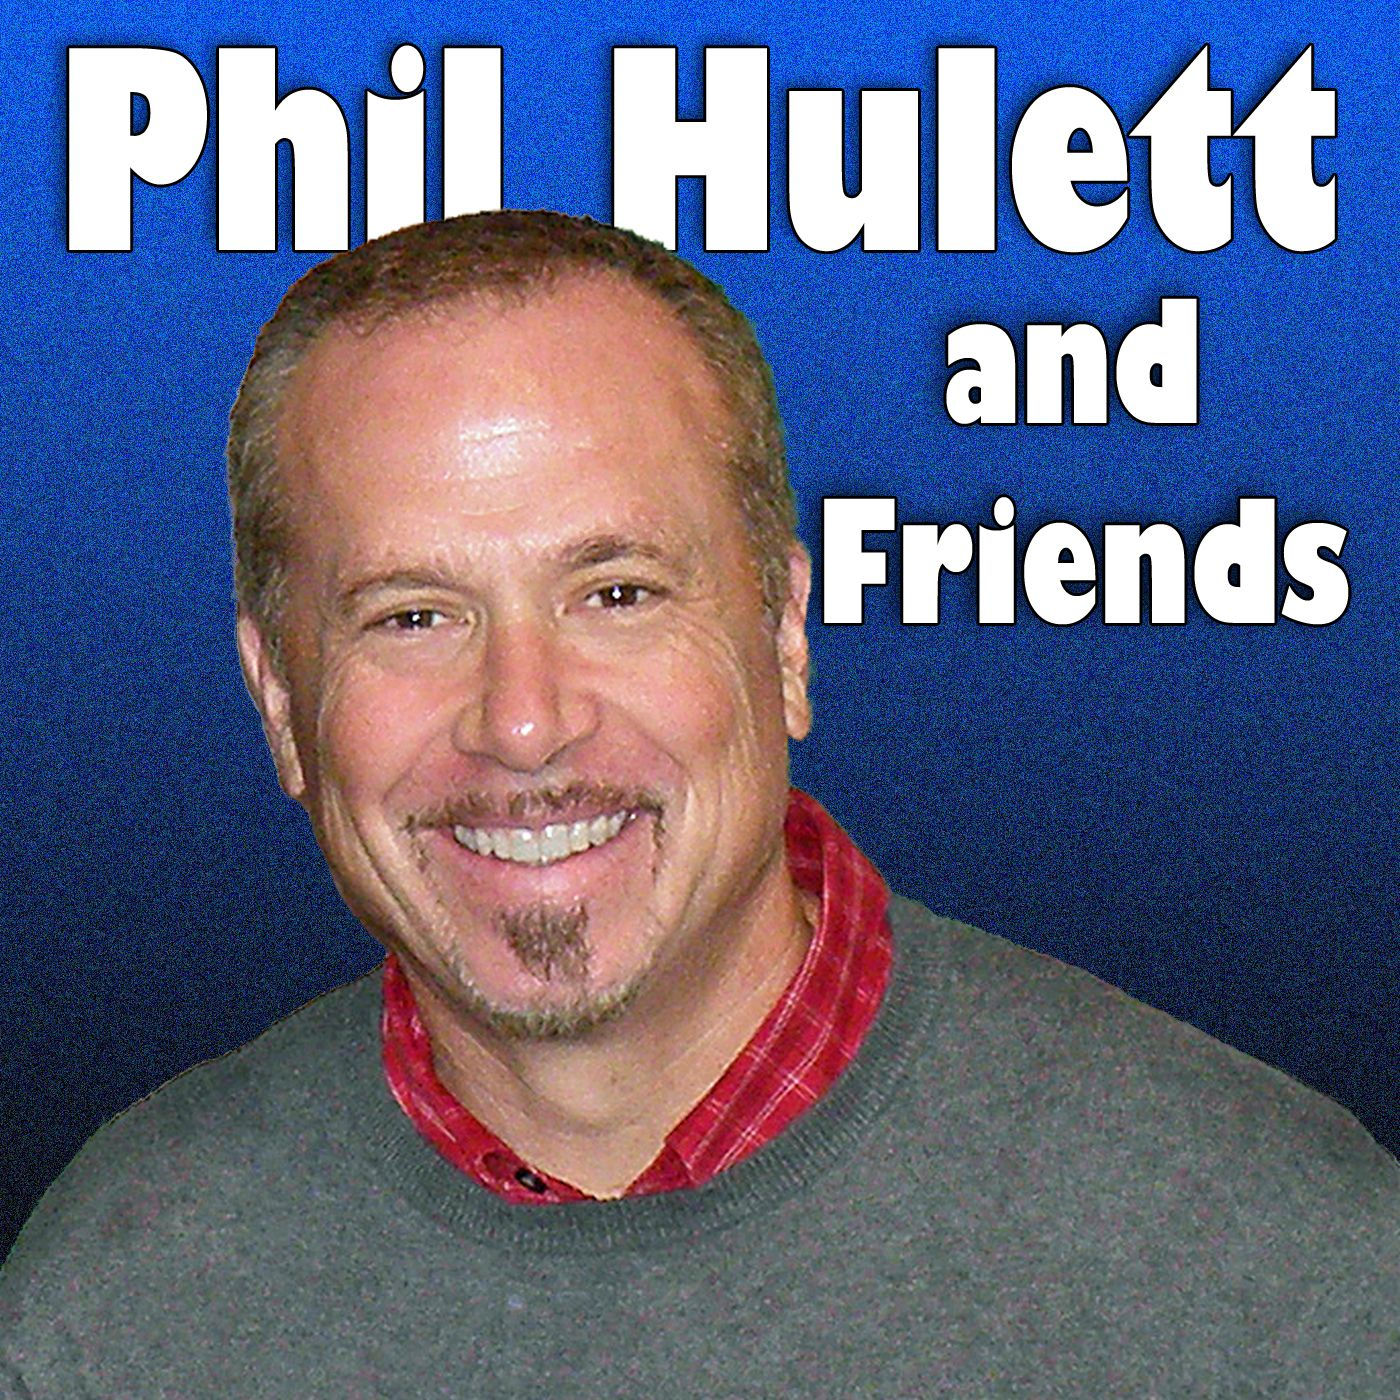 http://philhulettandfriends.podbean.com/mf/web/3j9h6k/051316PHAF0272.mp3 Yup, it's Friday the 13th and we talk about all the superstitions as well as GOOD things that happened over the years on this peculiar day. Gonzo Greg Spillane offers up his perspective on theu2026